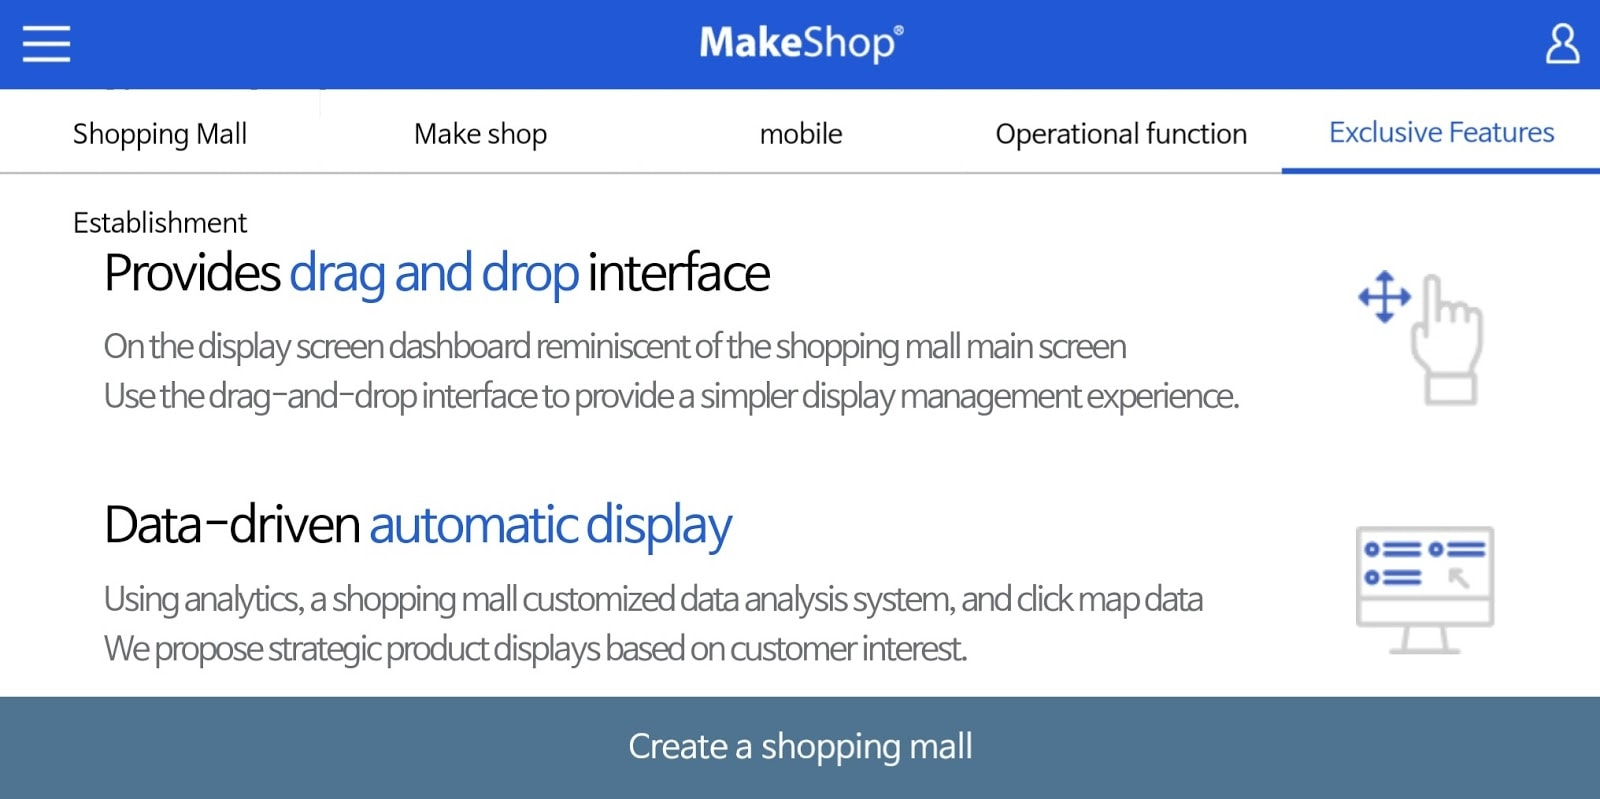 MakeShop features